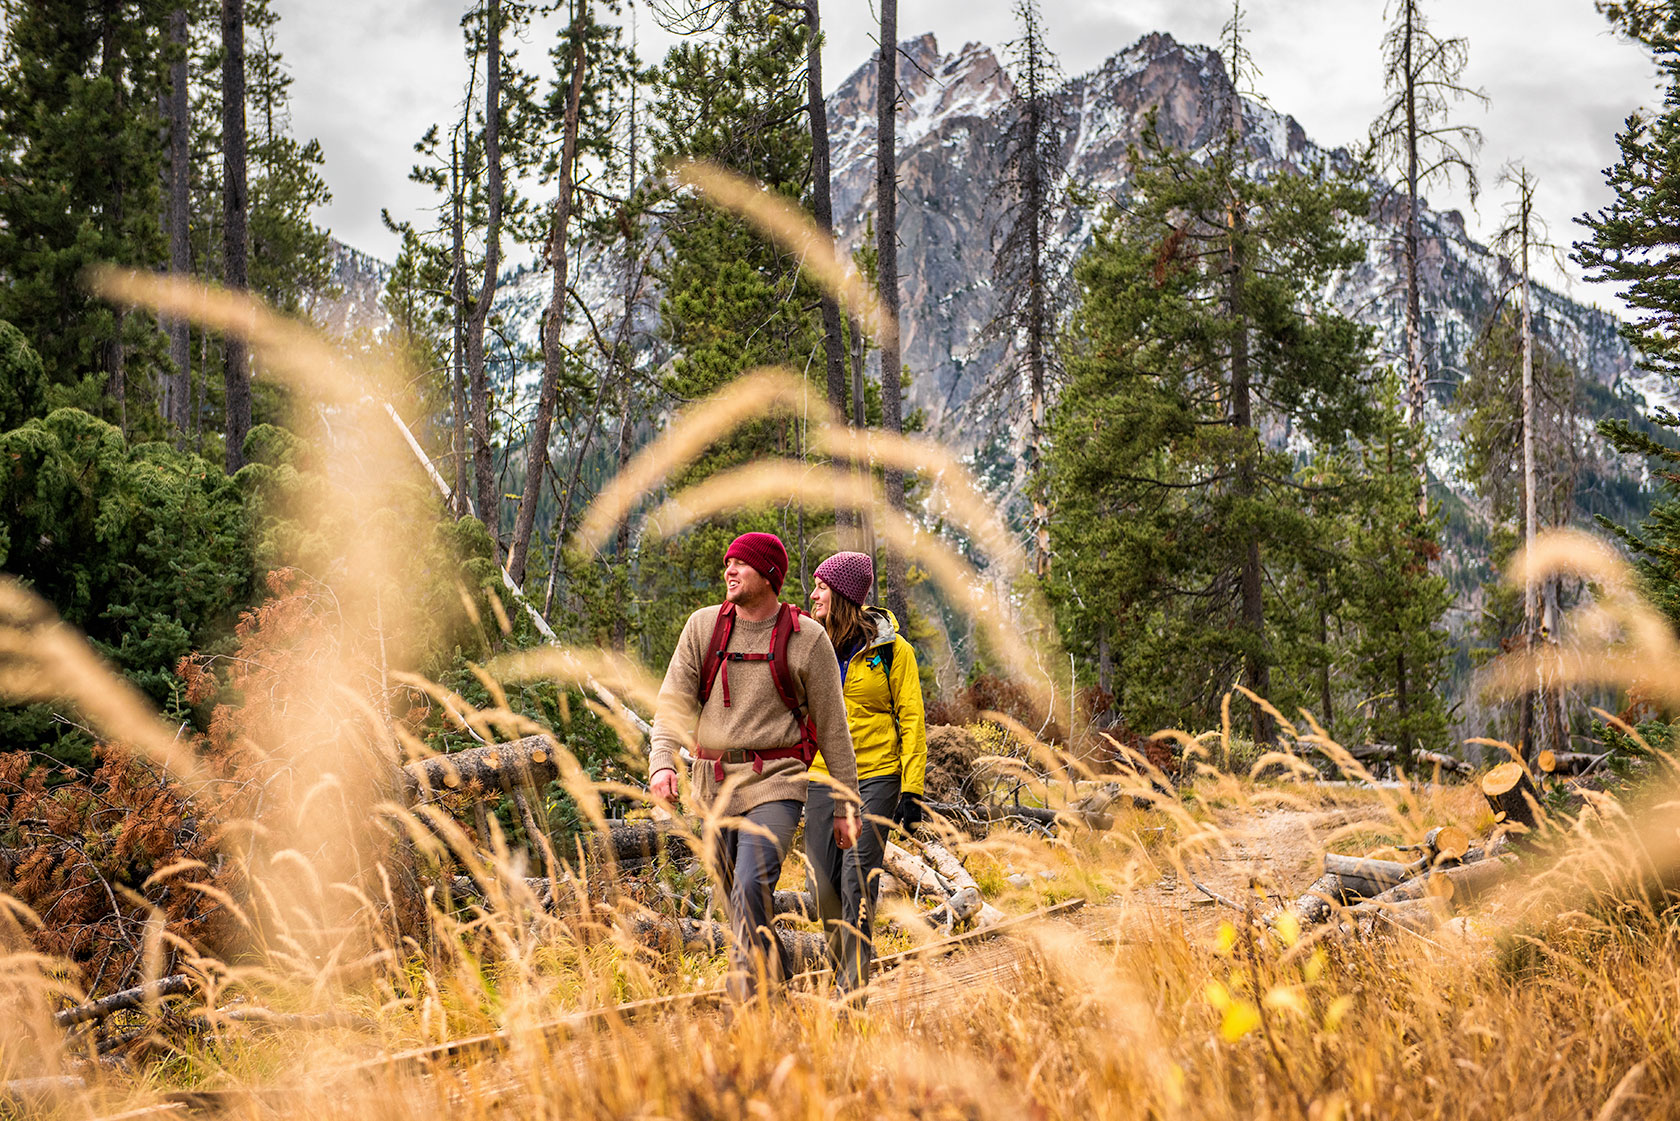 austin-trigg-patagonia-sawtooth-hiking-wheat-grass-advenure-wilderness-forest-idaho-outside-lifestyle-day-fall-weather-mountains-stanley-lake.jpg